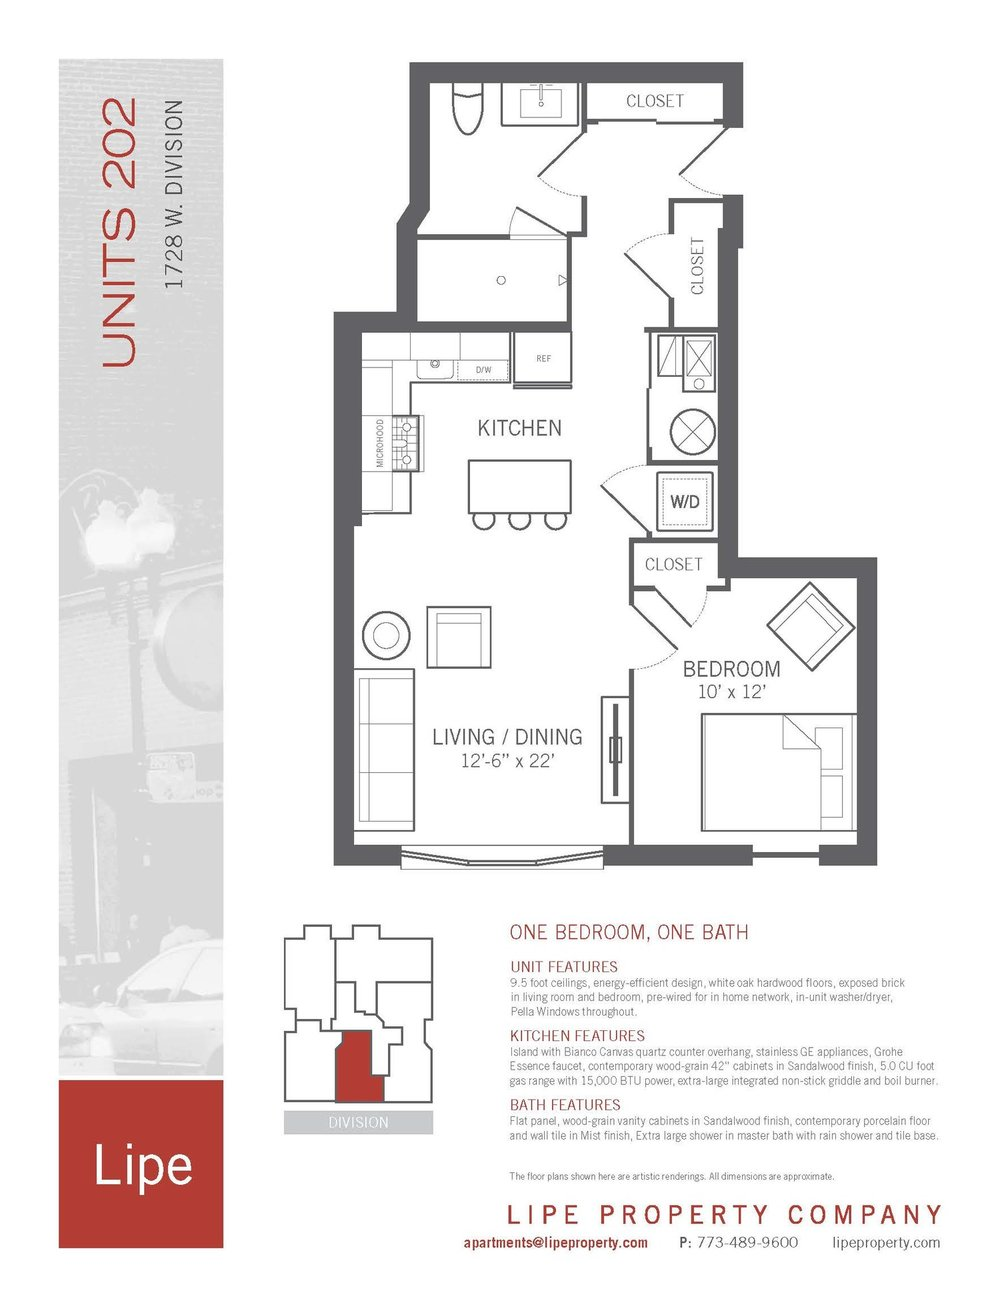 1728-West-Division-202-Floorplan-Chicago-apartment-for-rent.jpg